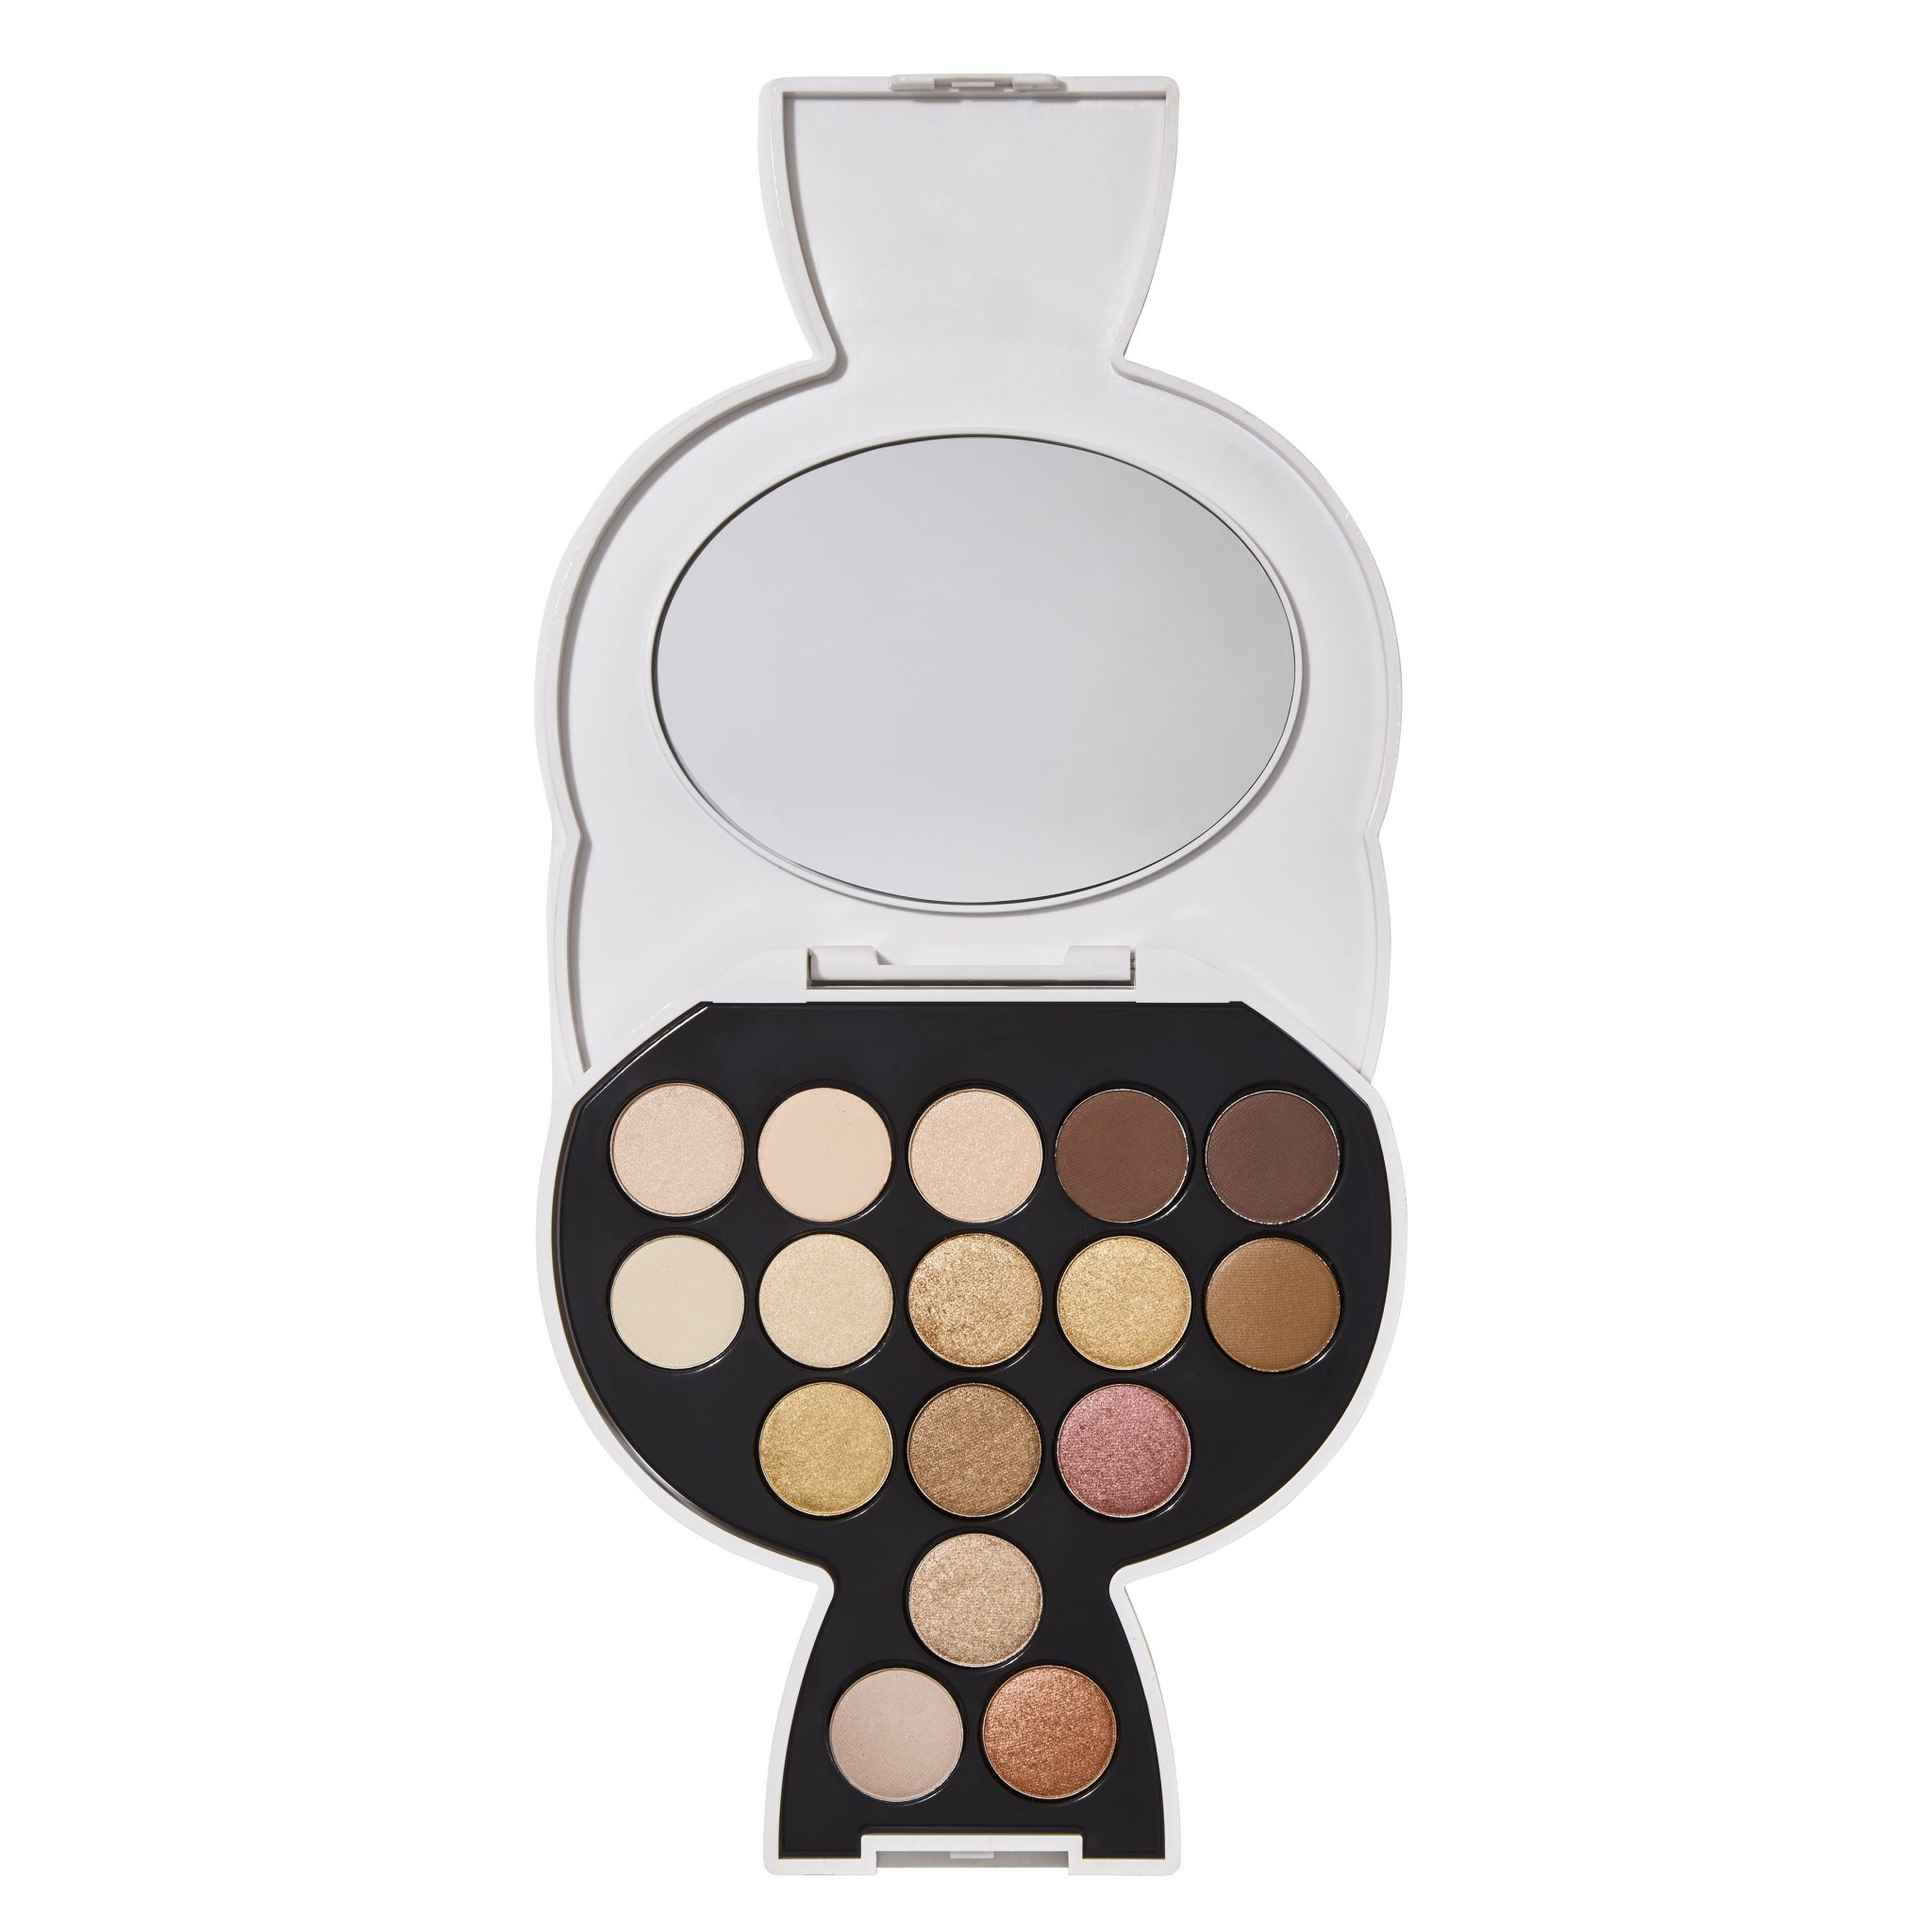 KARL LAGERFELD + MODEL CO CHOUPETTE COLLECTABLE EYESHADOW PALETTE DAY TO NIGHT - WA_OPEN